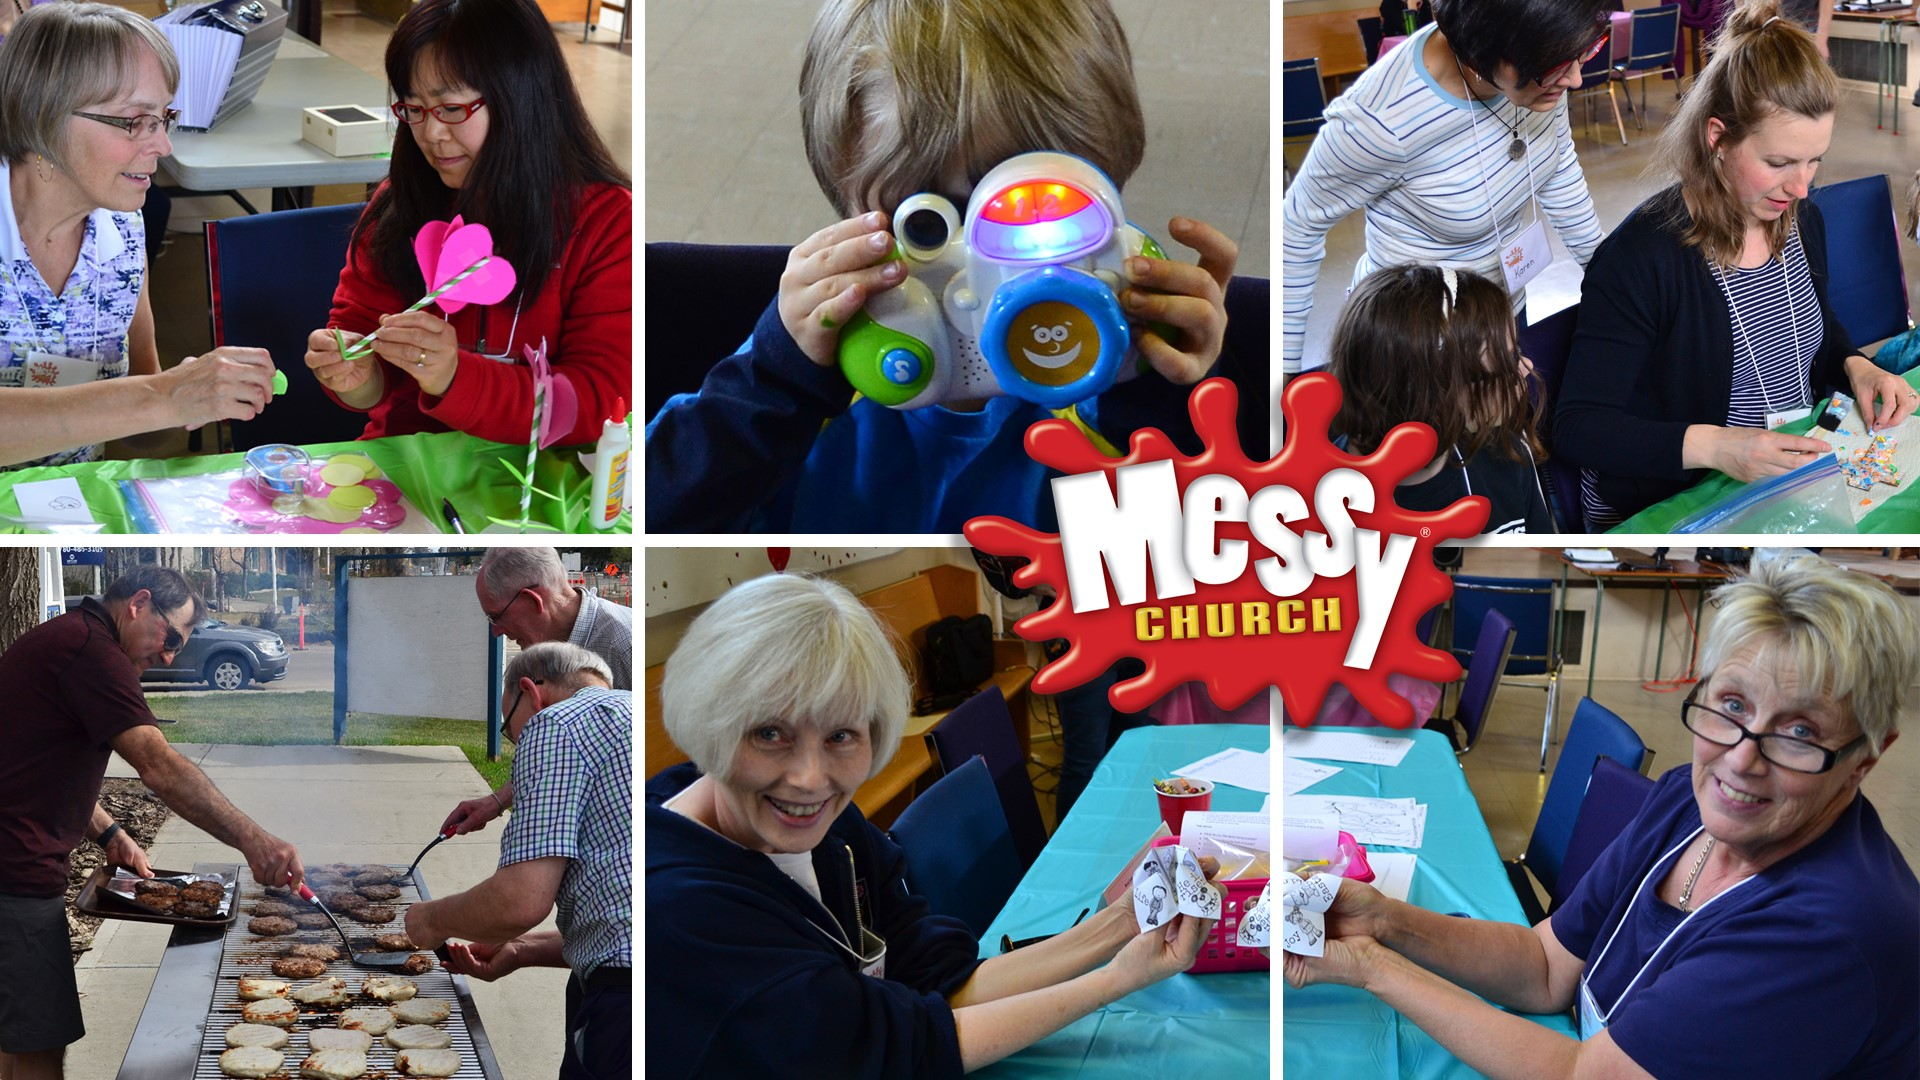 It's our June Messy Church Saturday 8th June at 4pm : )